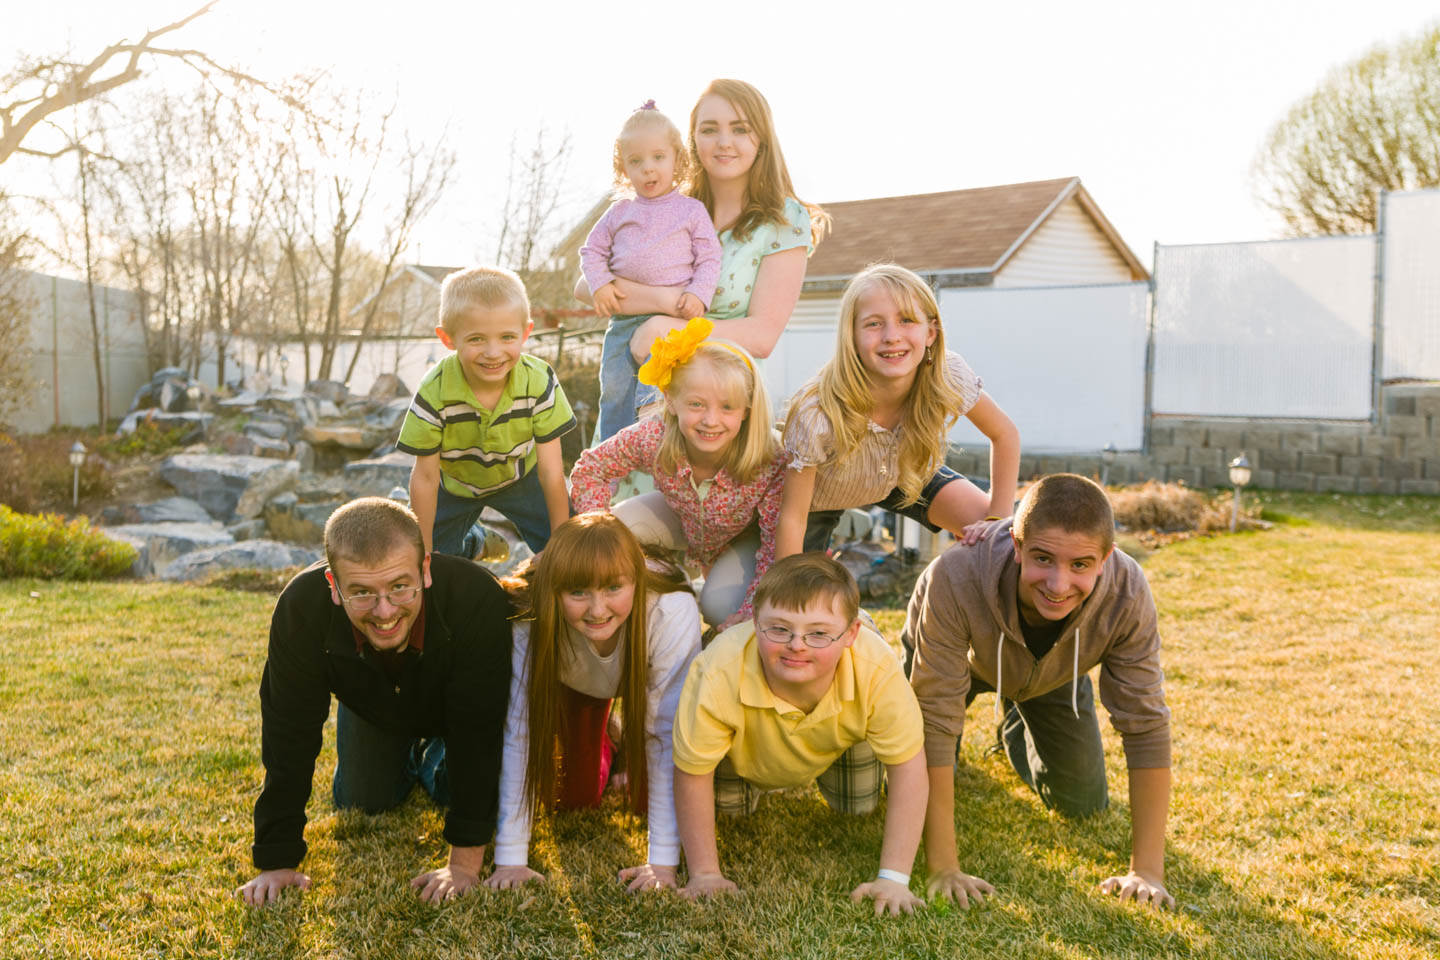 Grandkids perform a pyramid